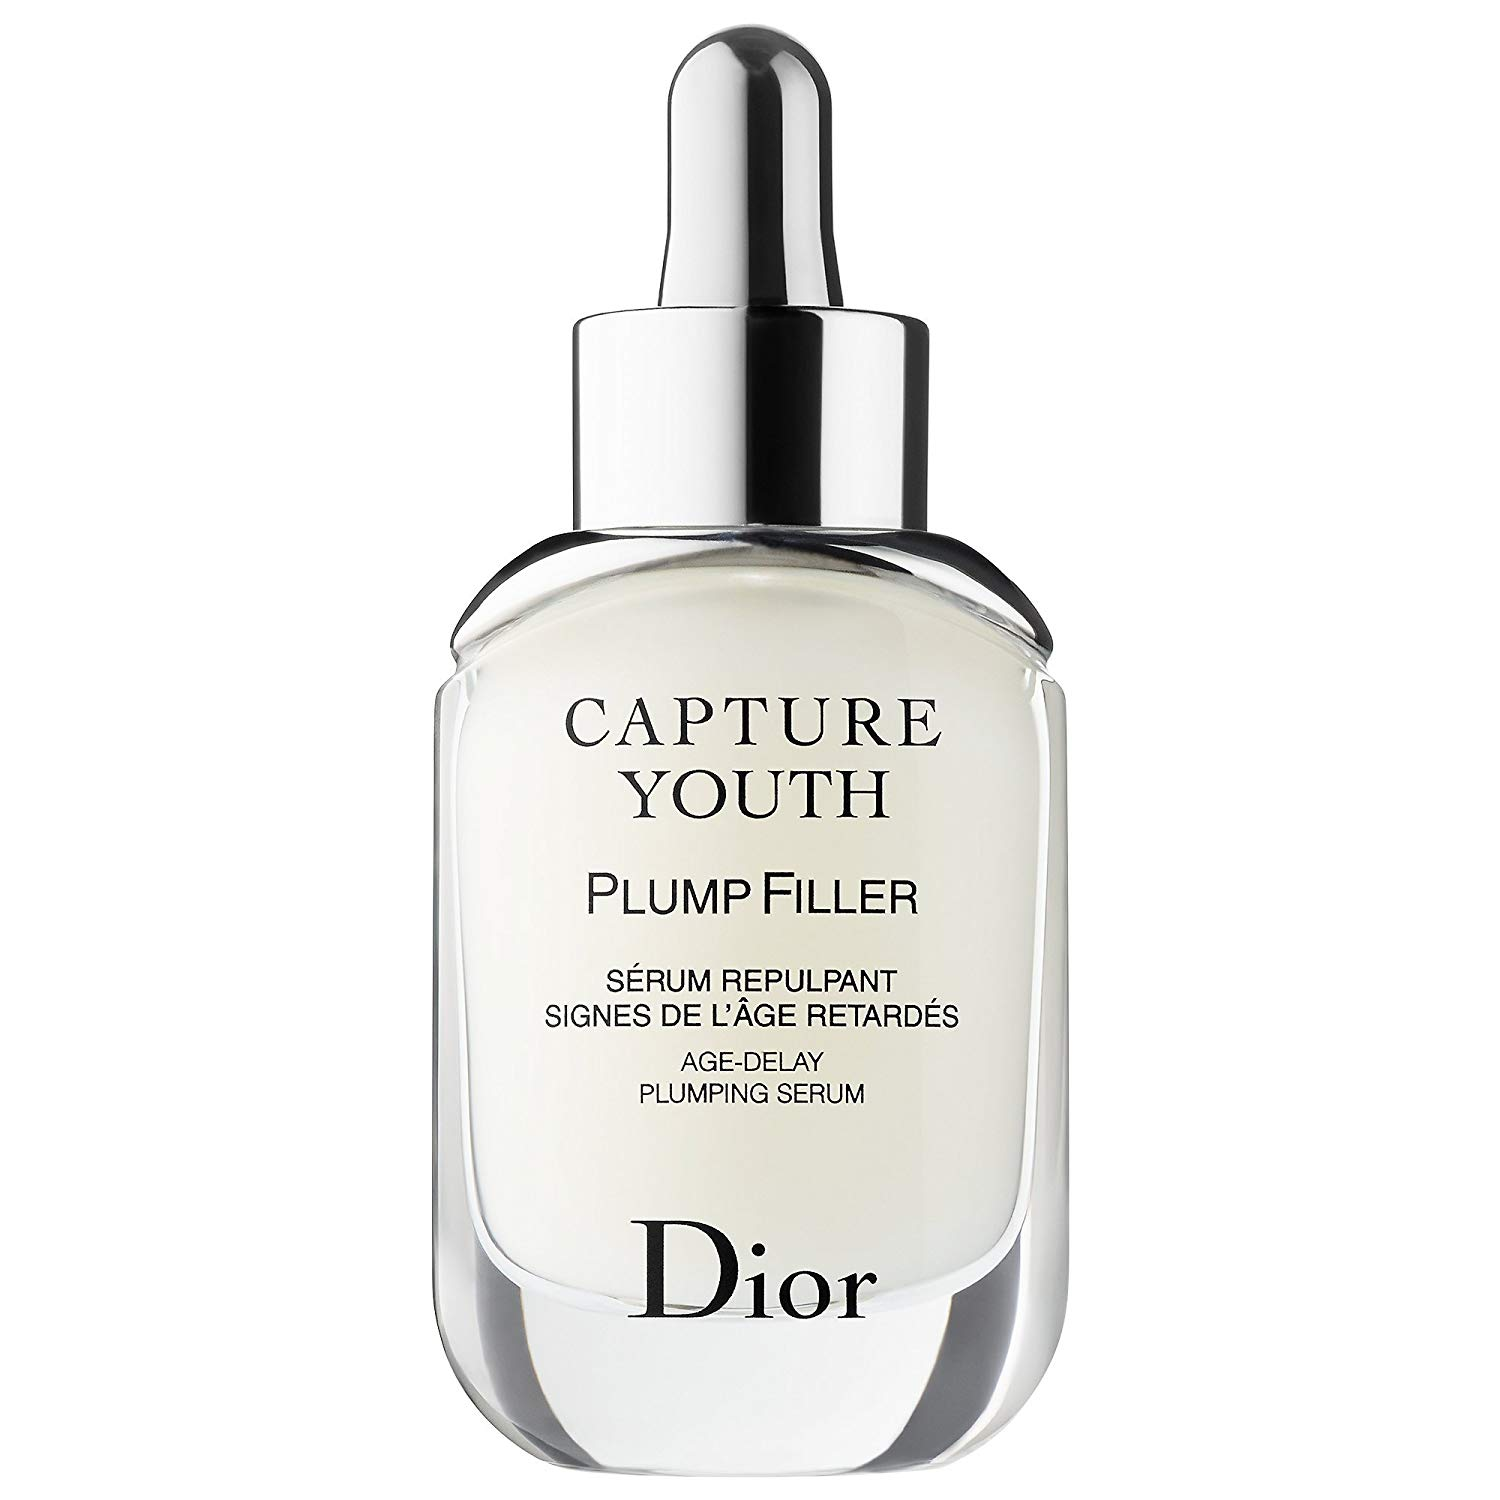 Dior Capture Youth Plump Filler